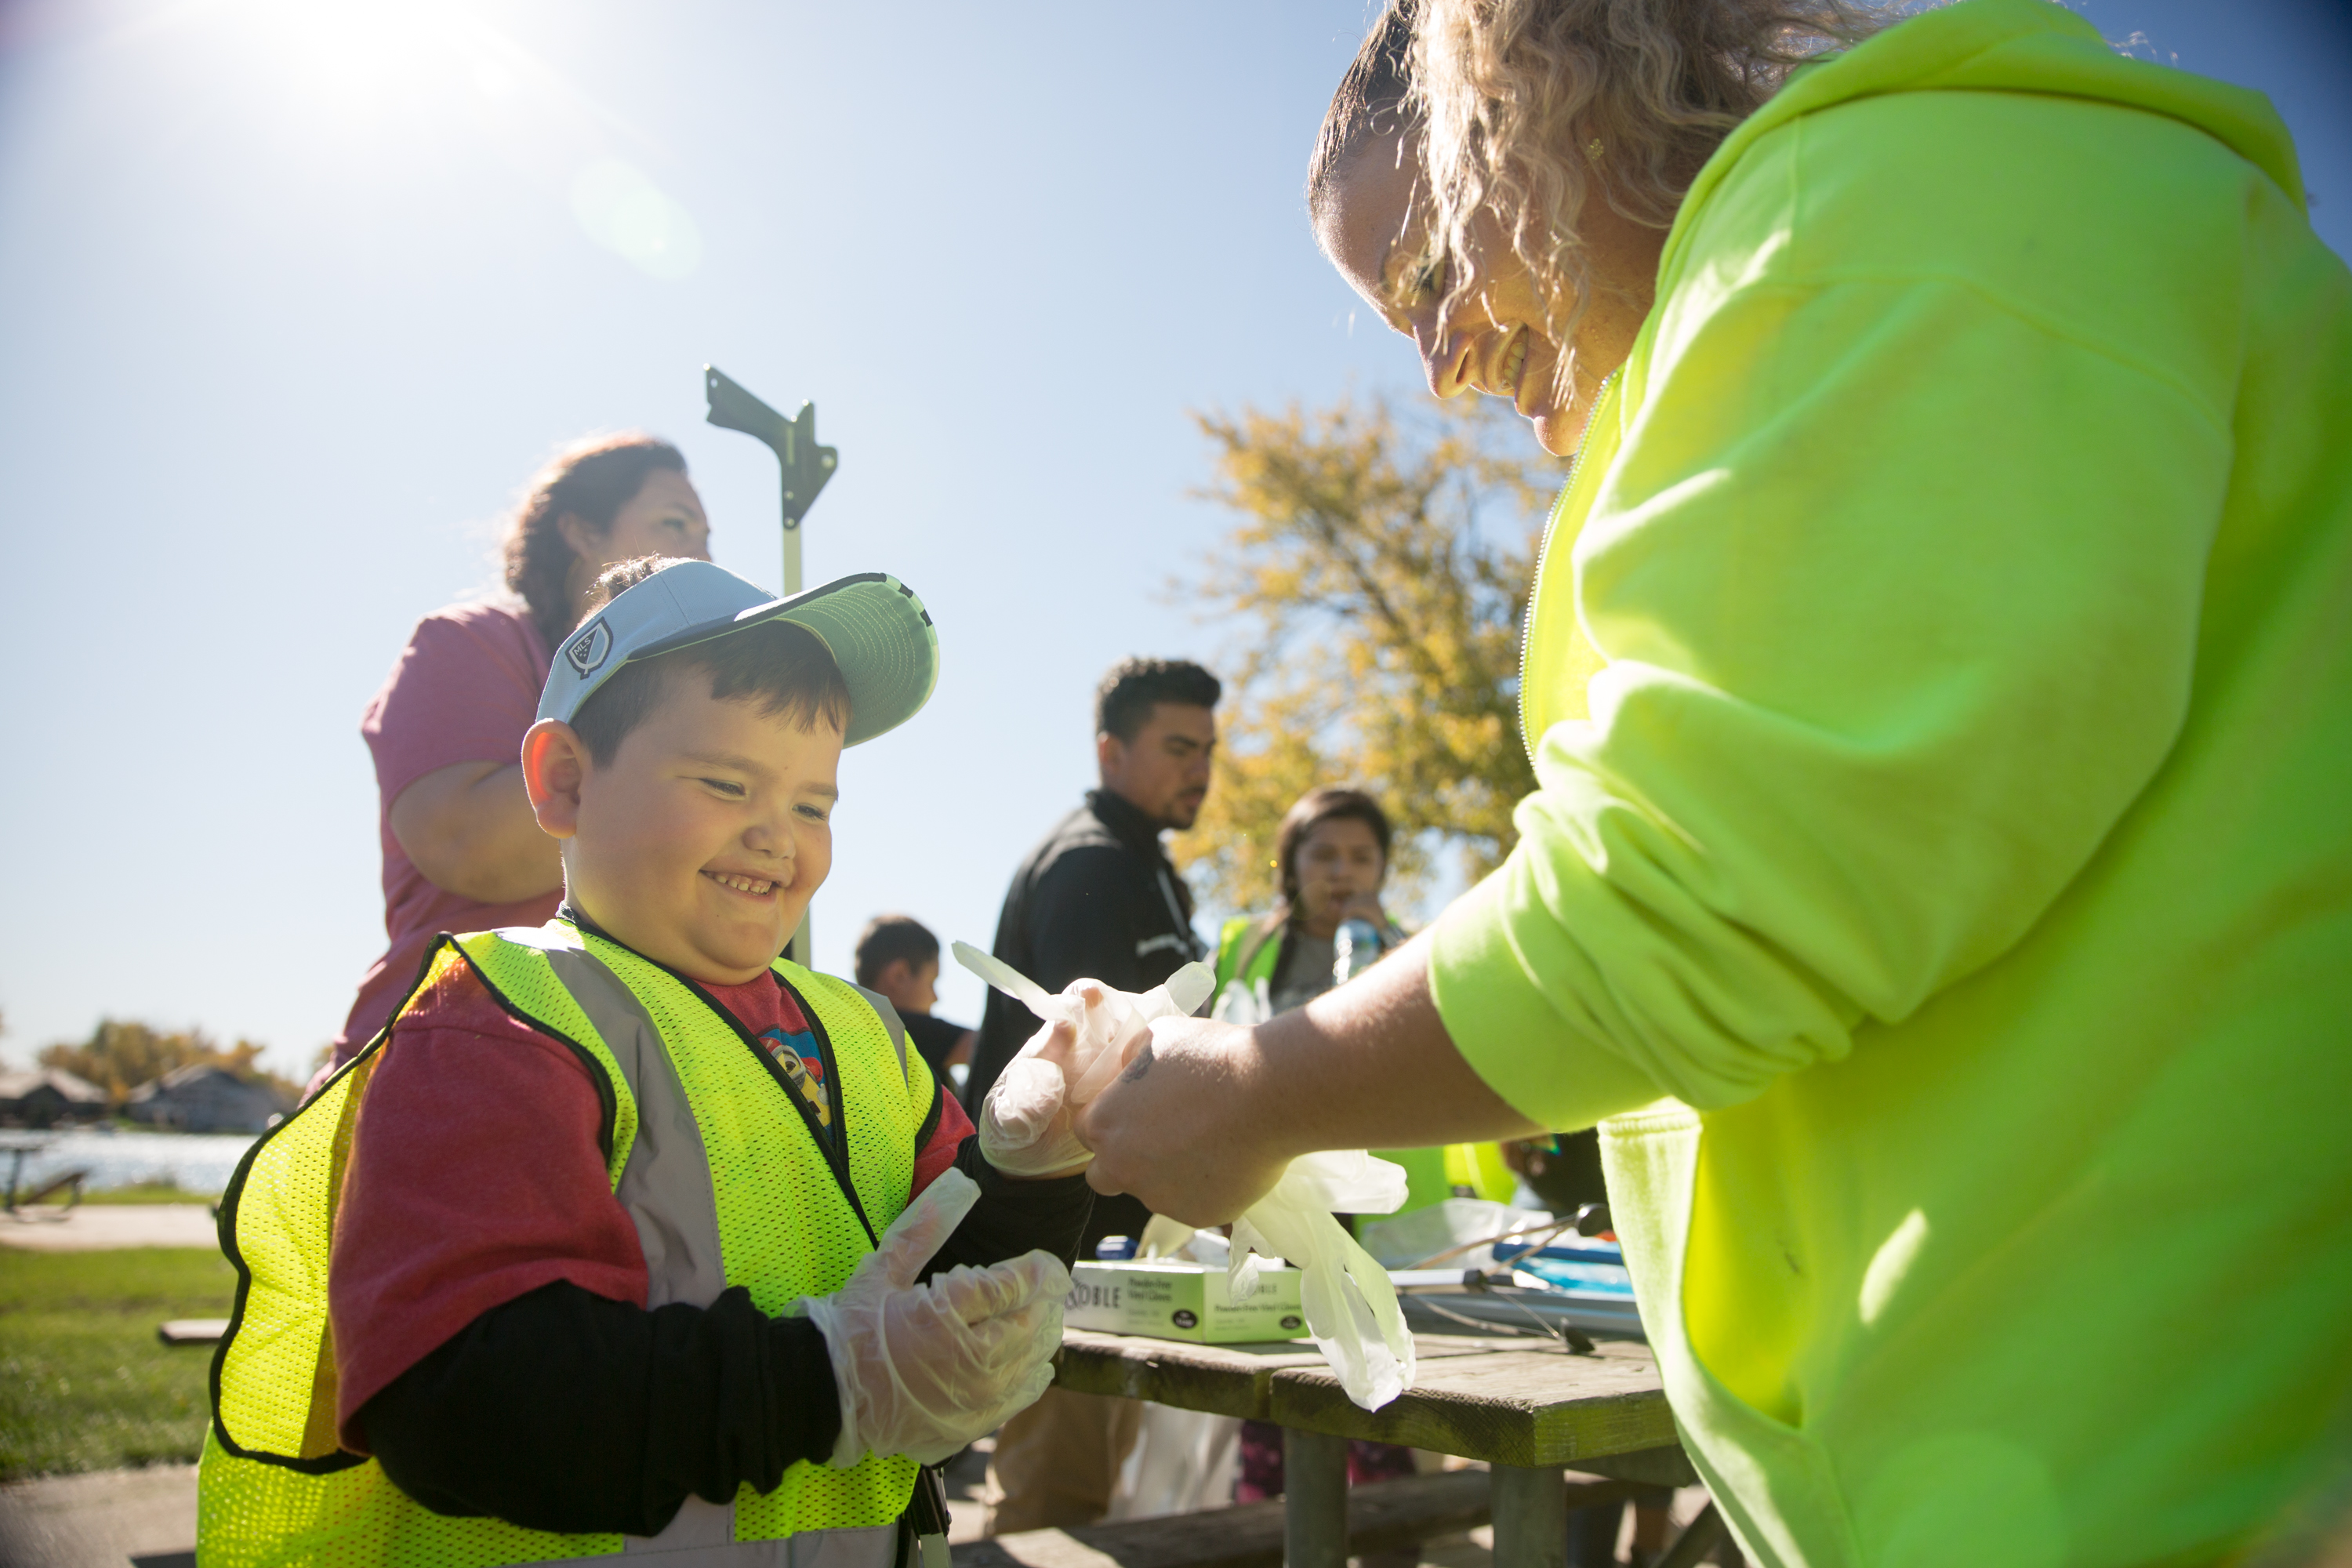 Youth Fall Cleanup